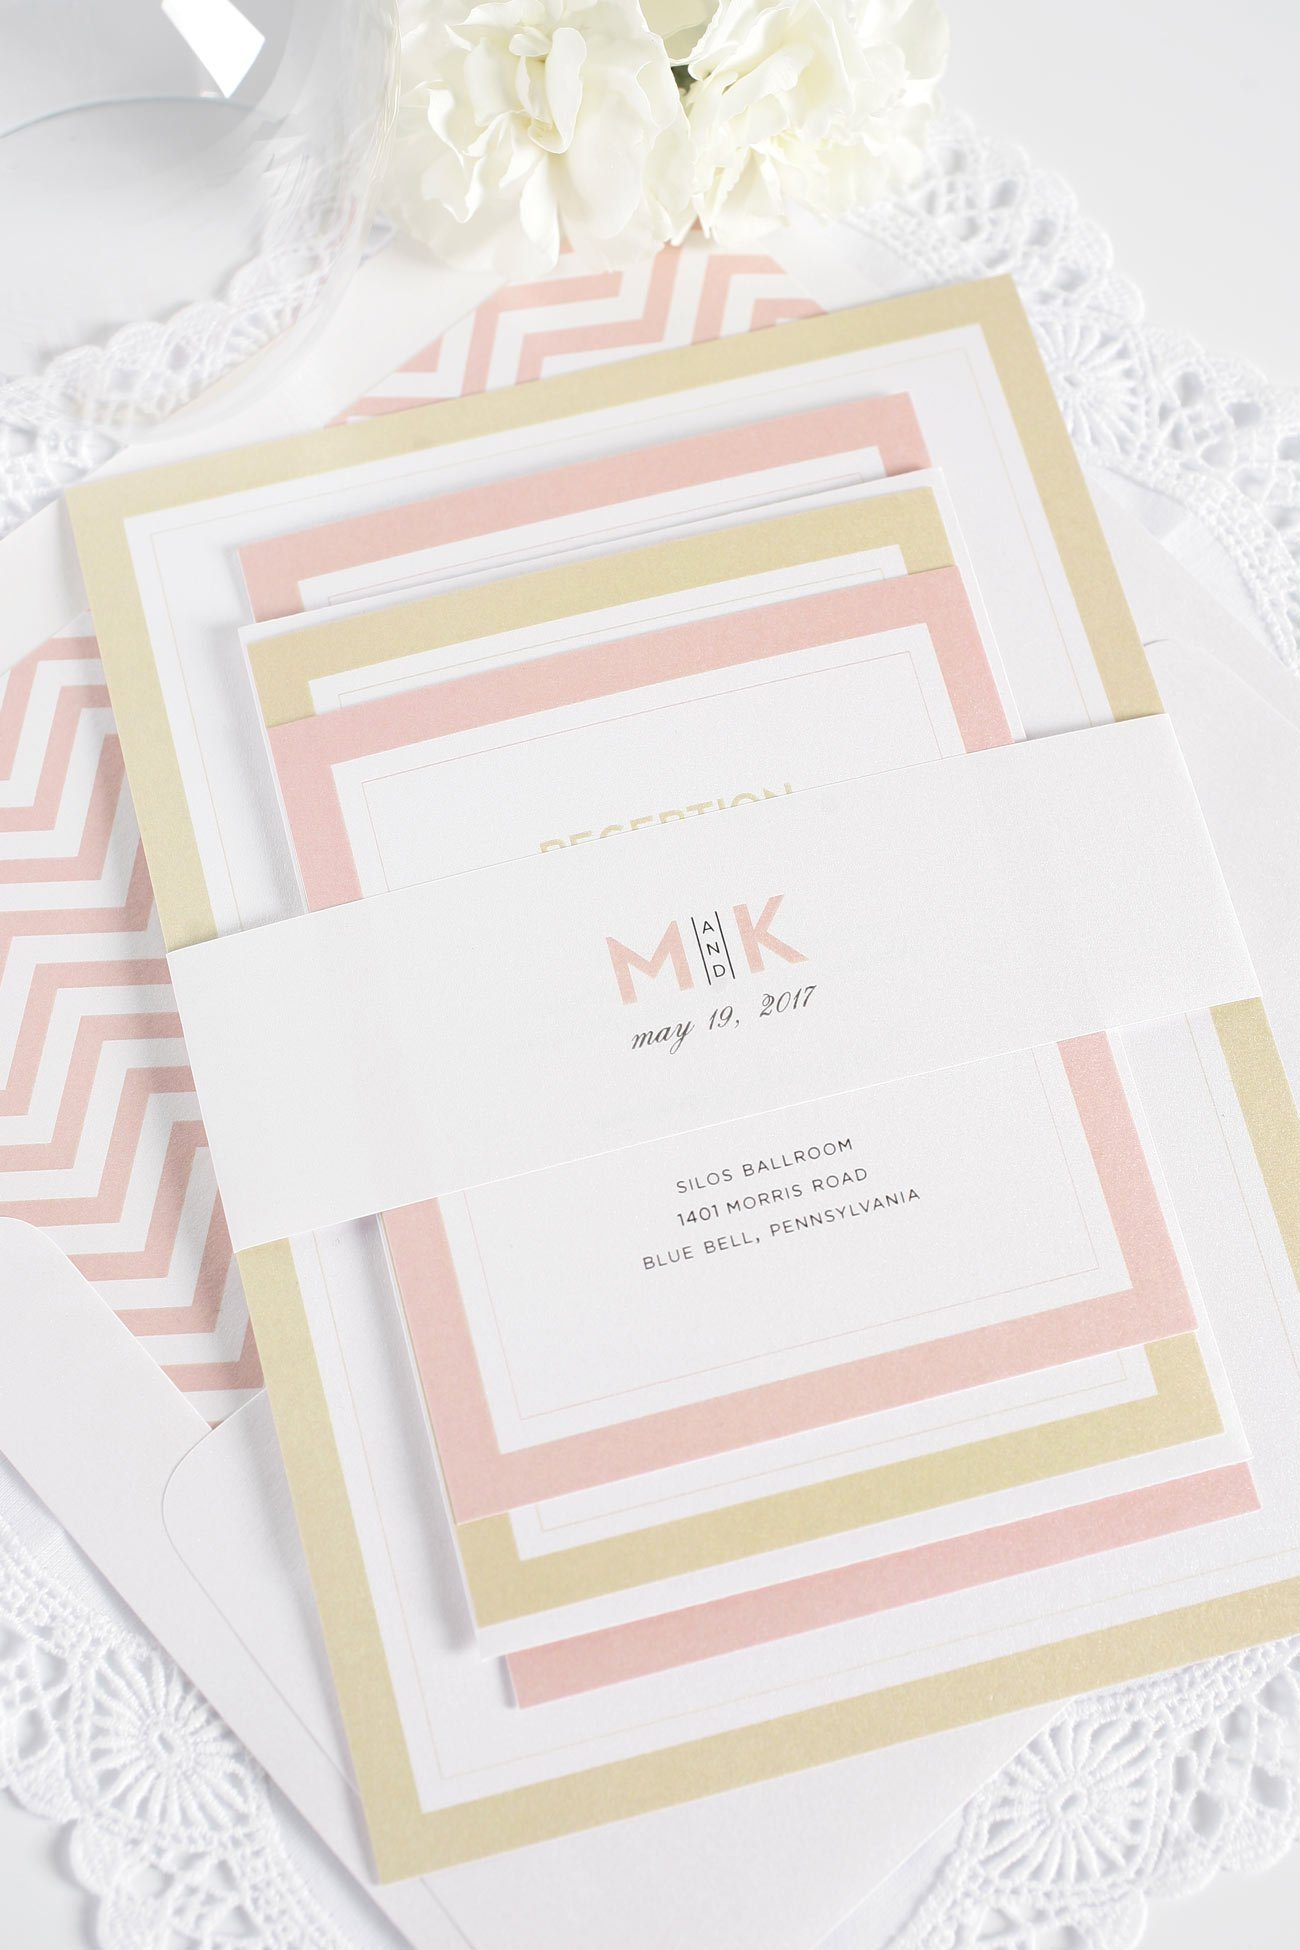 Modern blush and gold wedding invitations with chevron